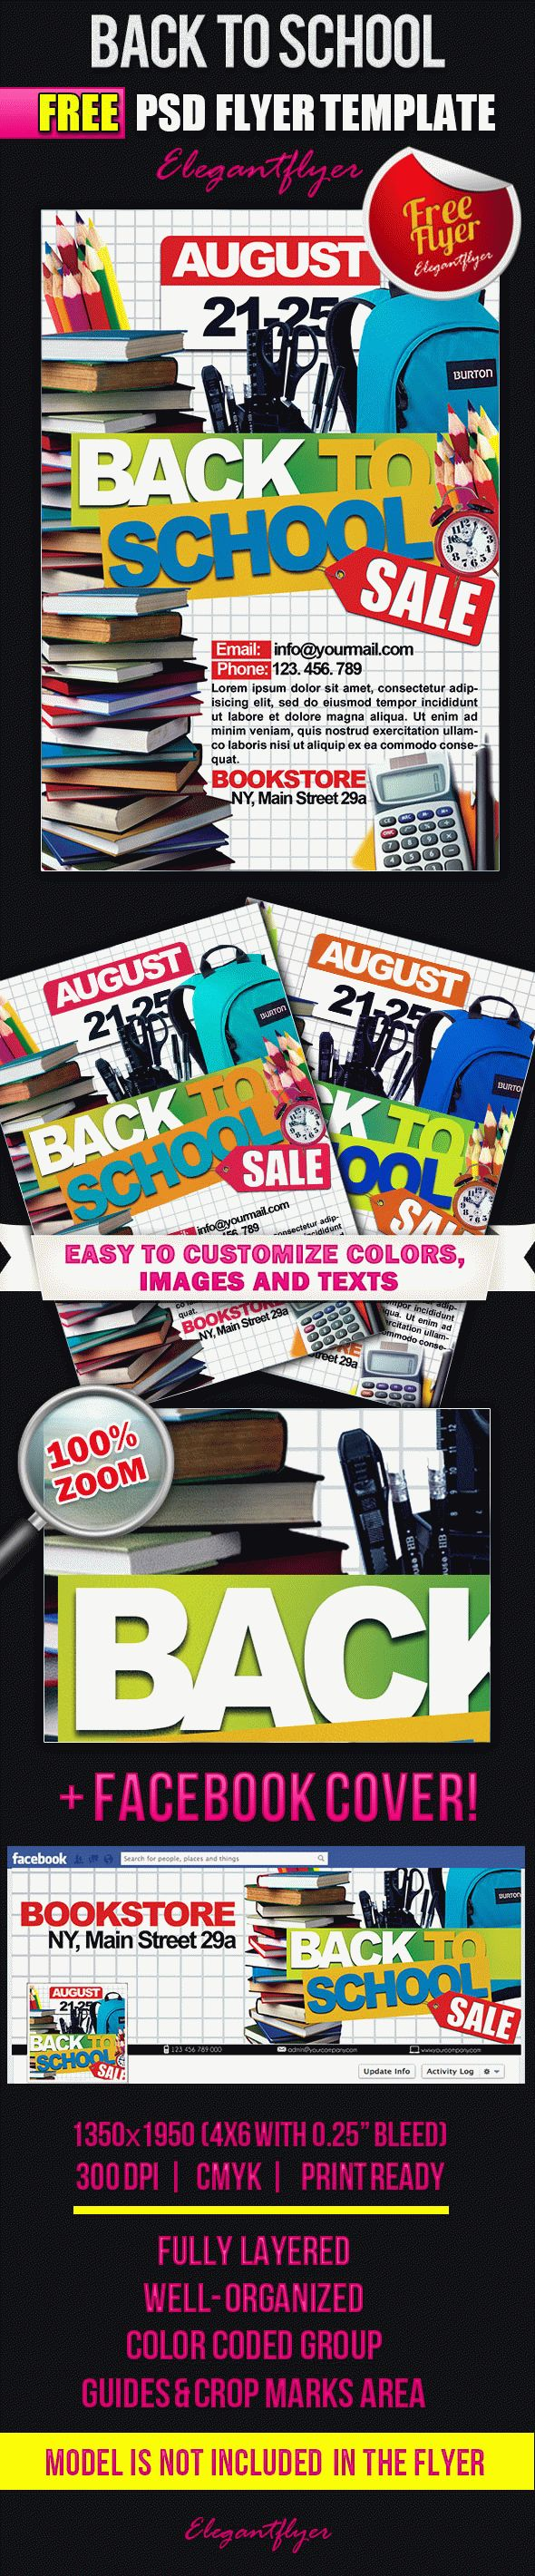 Psd Back To School Sale Template By Elegantflyer